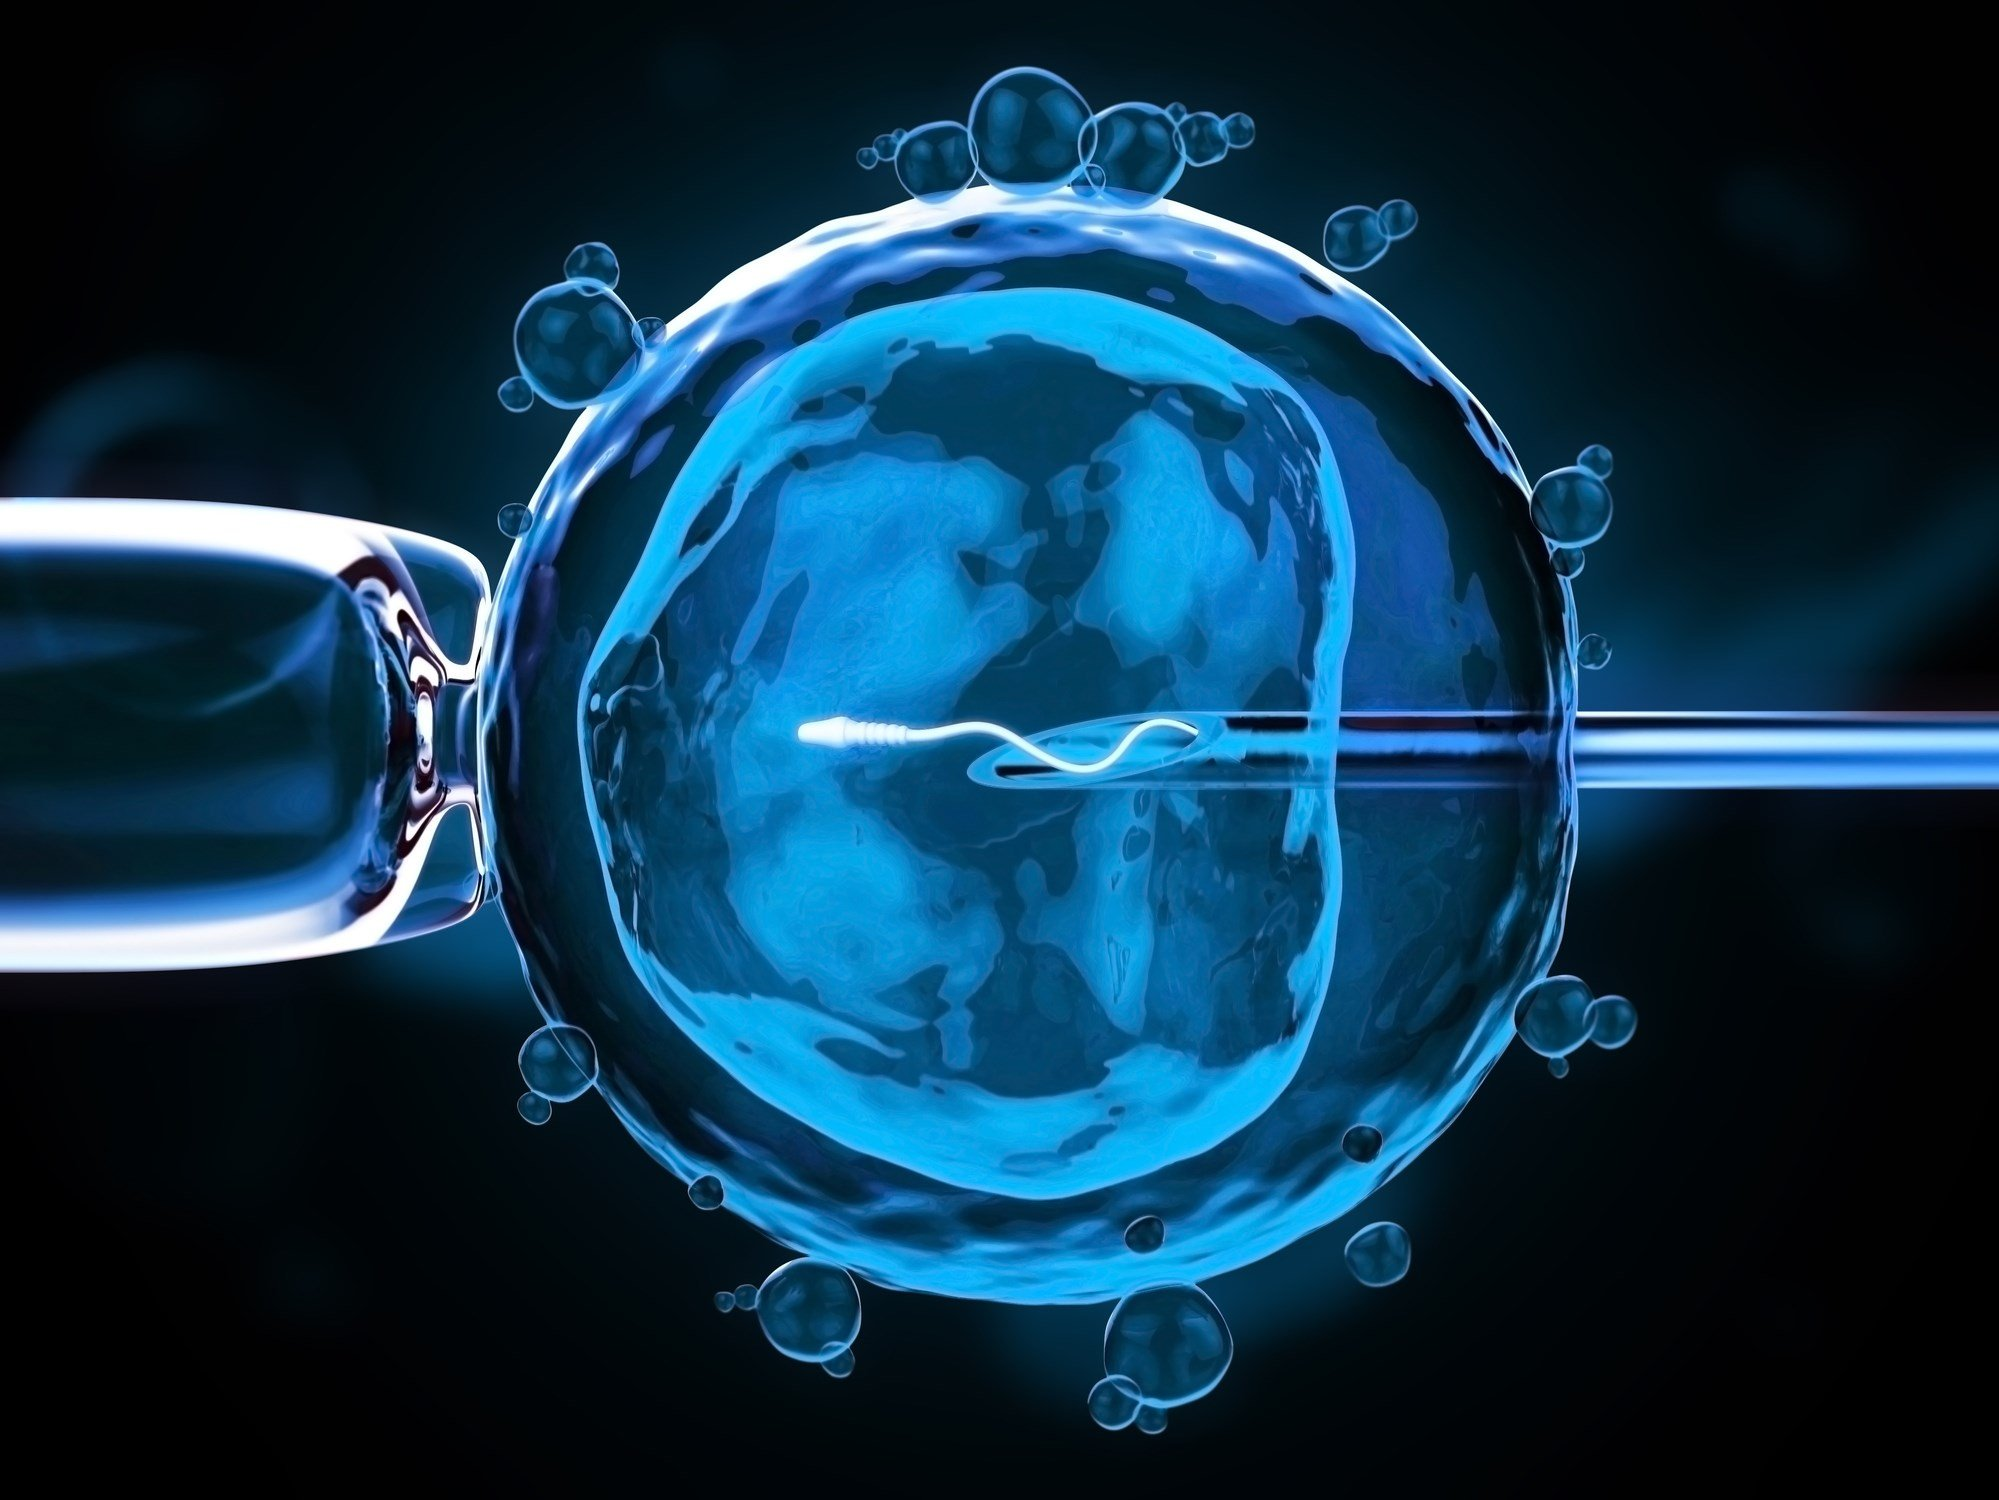 A human stem cell inserted into an embryo